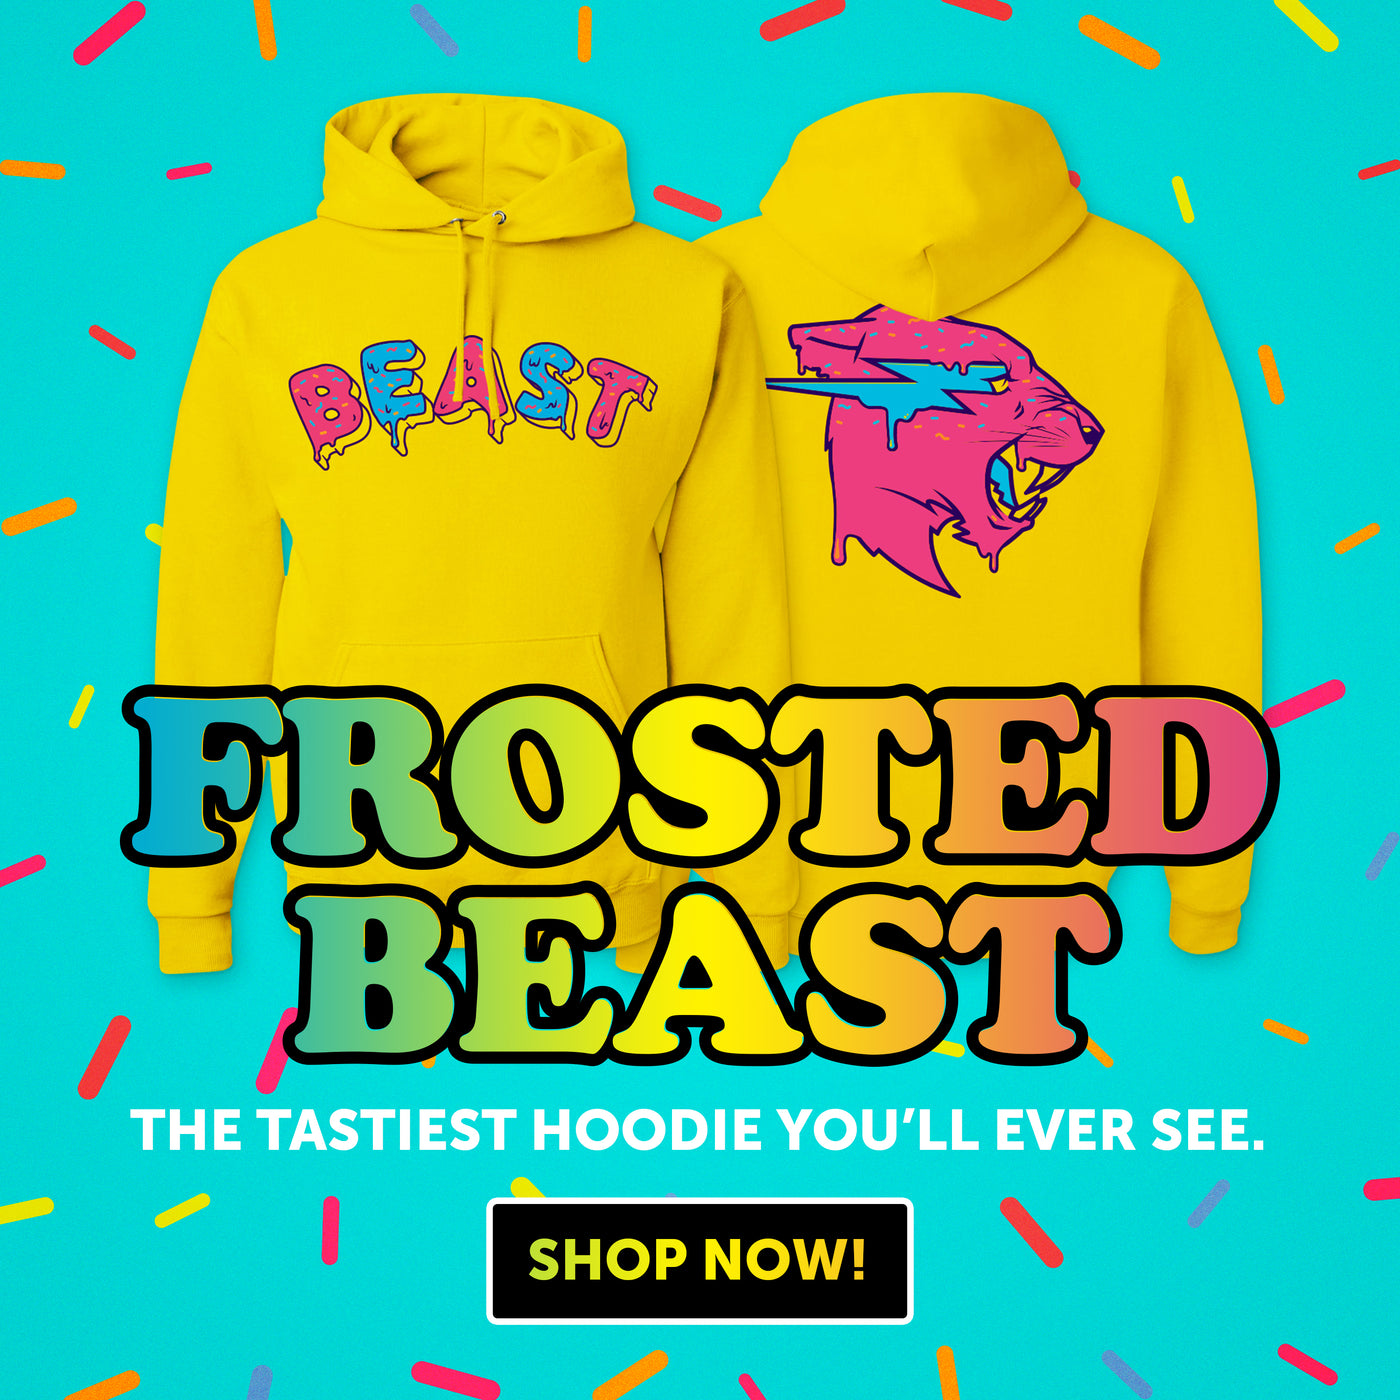 c8a45c4449c Frosted Beast Hoodie